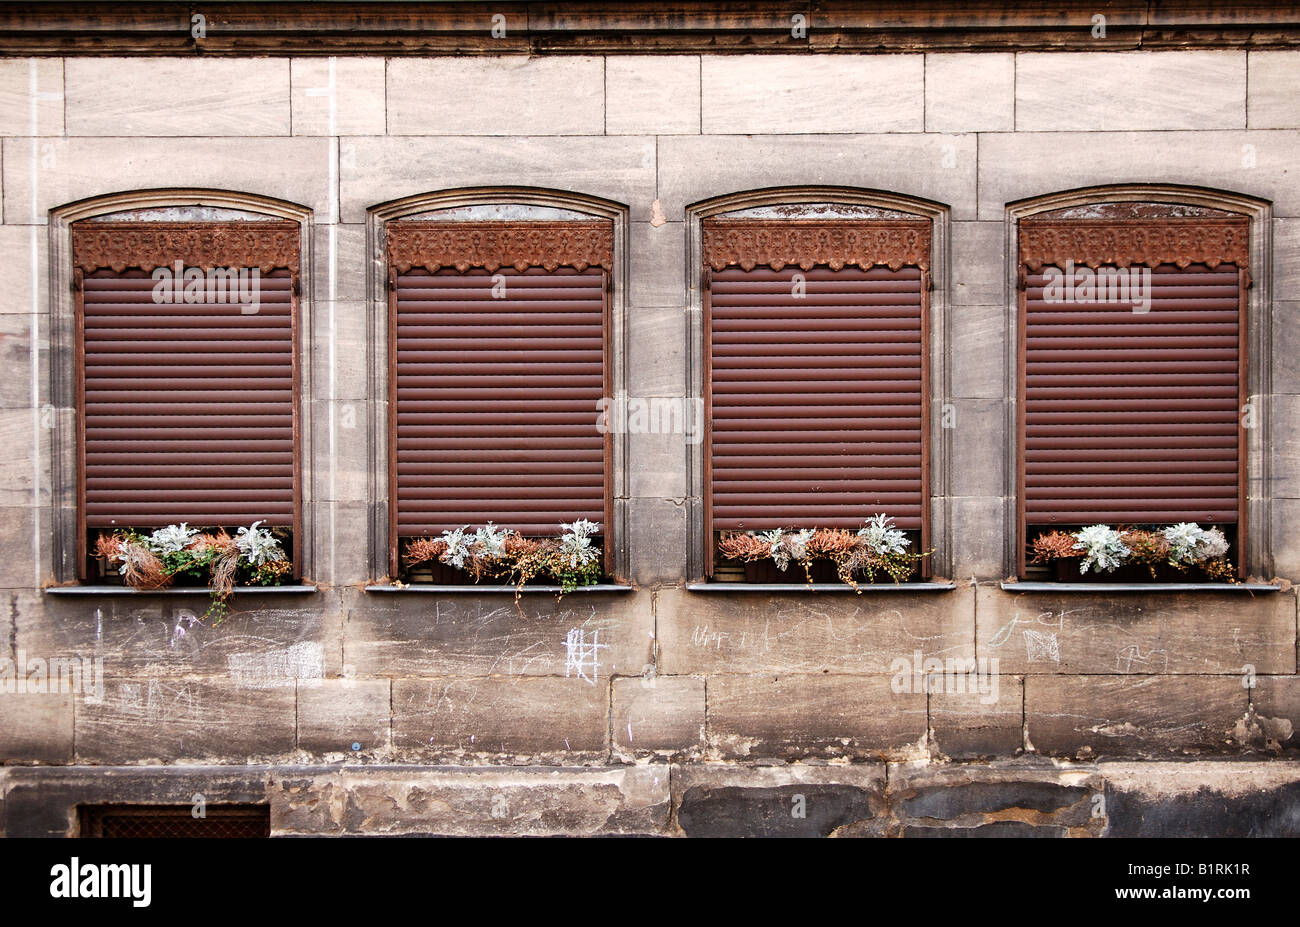 Dried, withered flowers on shuttered windows, Fuerth, Middle Franconia, Bavaria, Germany, Europe - Stock Image